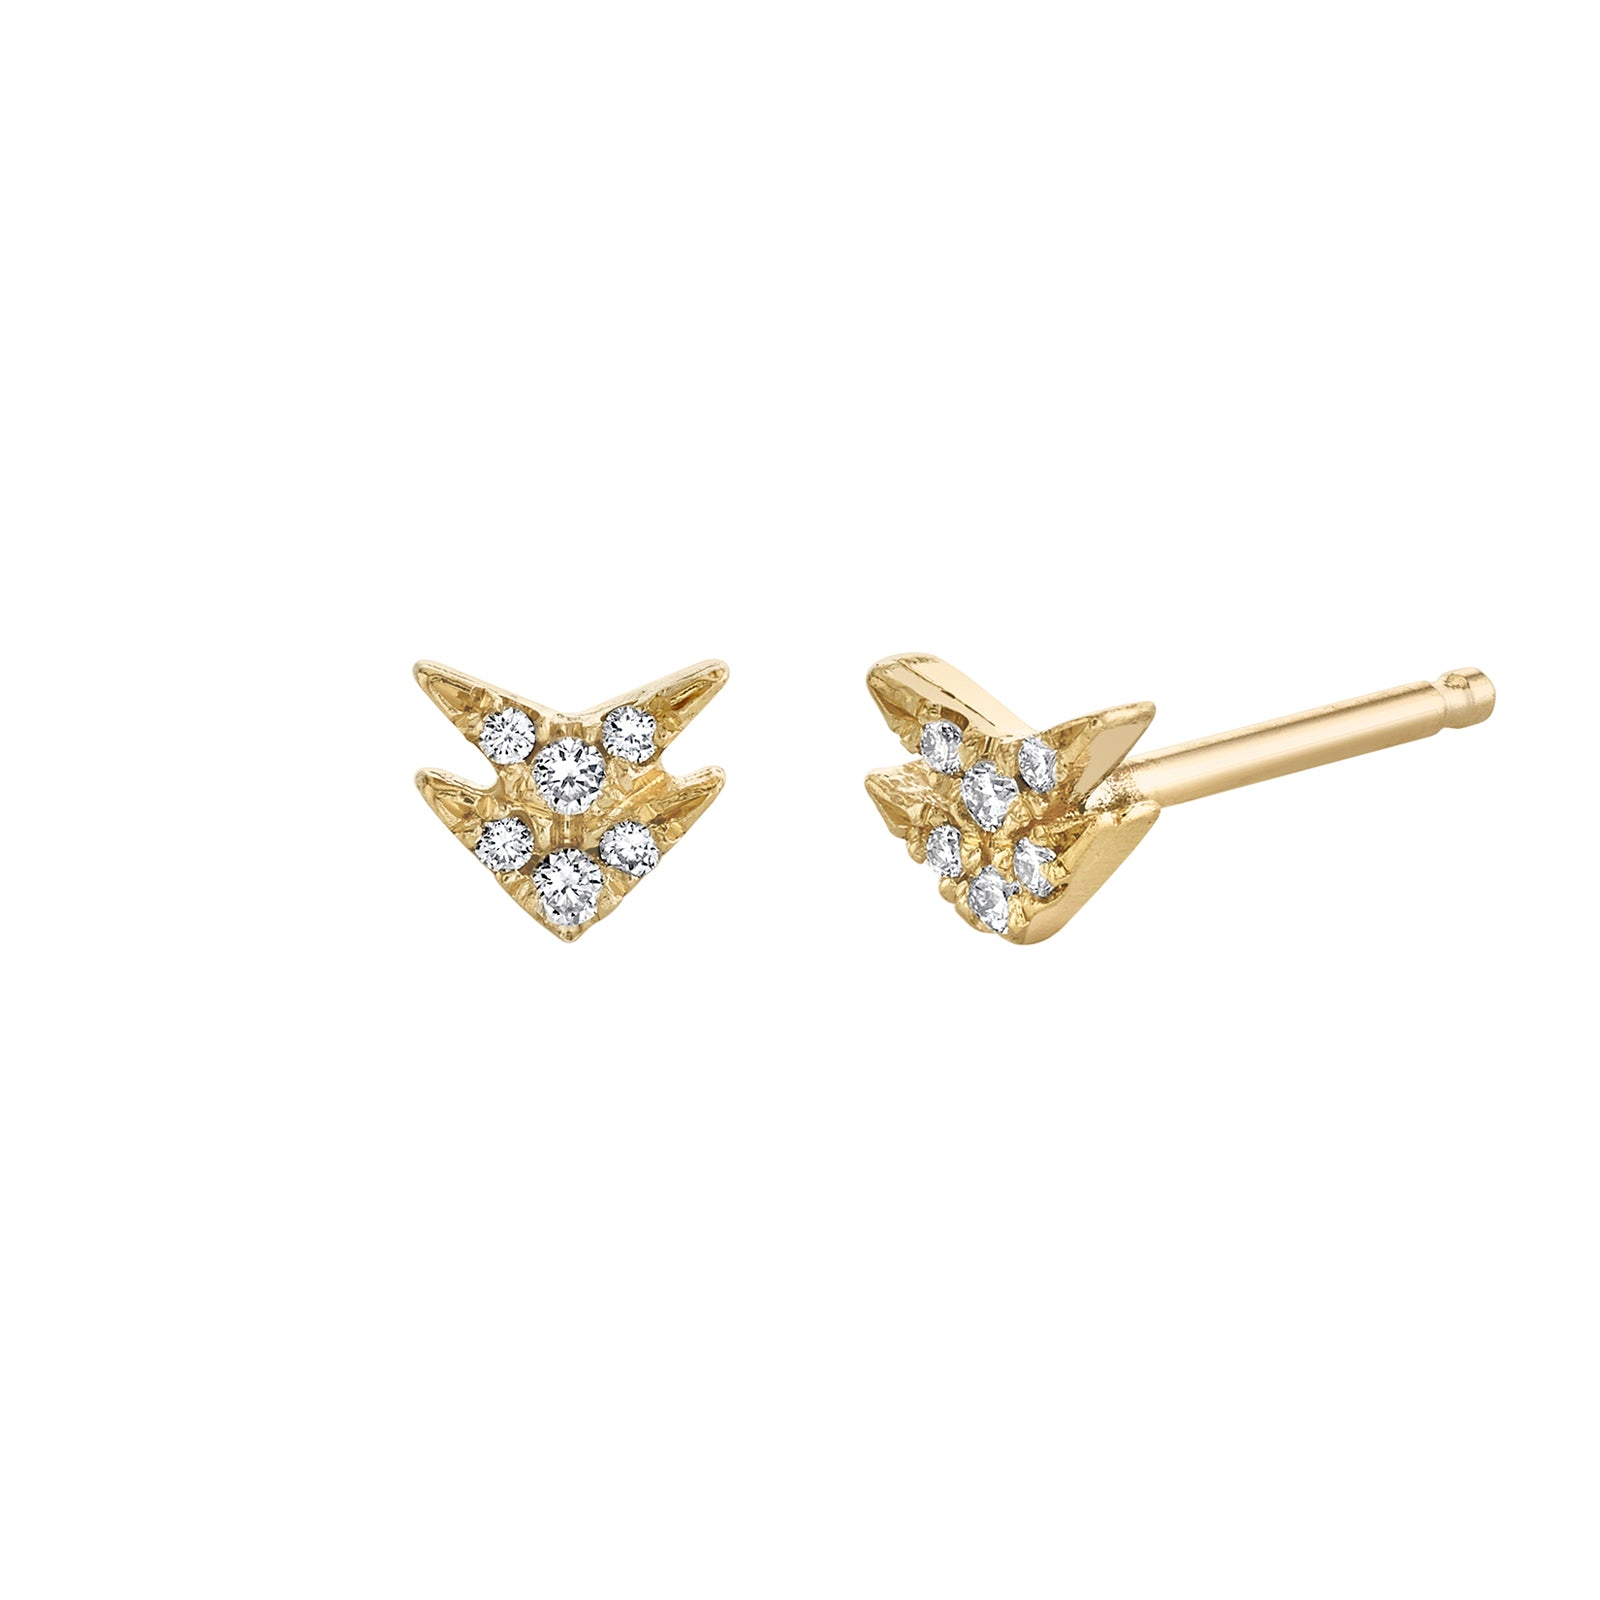 Lizzie Mandler Double Diamond Pave V Stud - Yellow Gold - Earrings - Broken English Jewelry